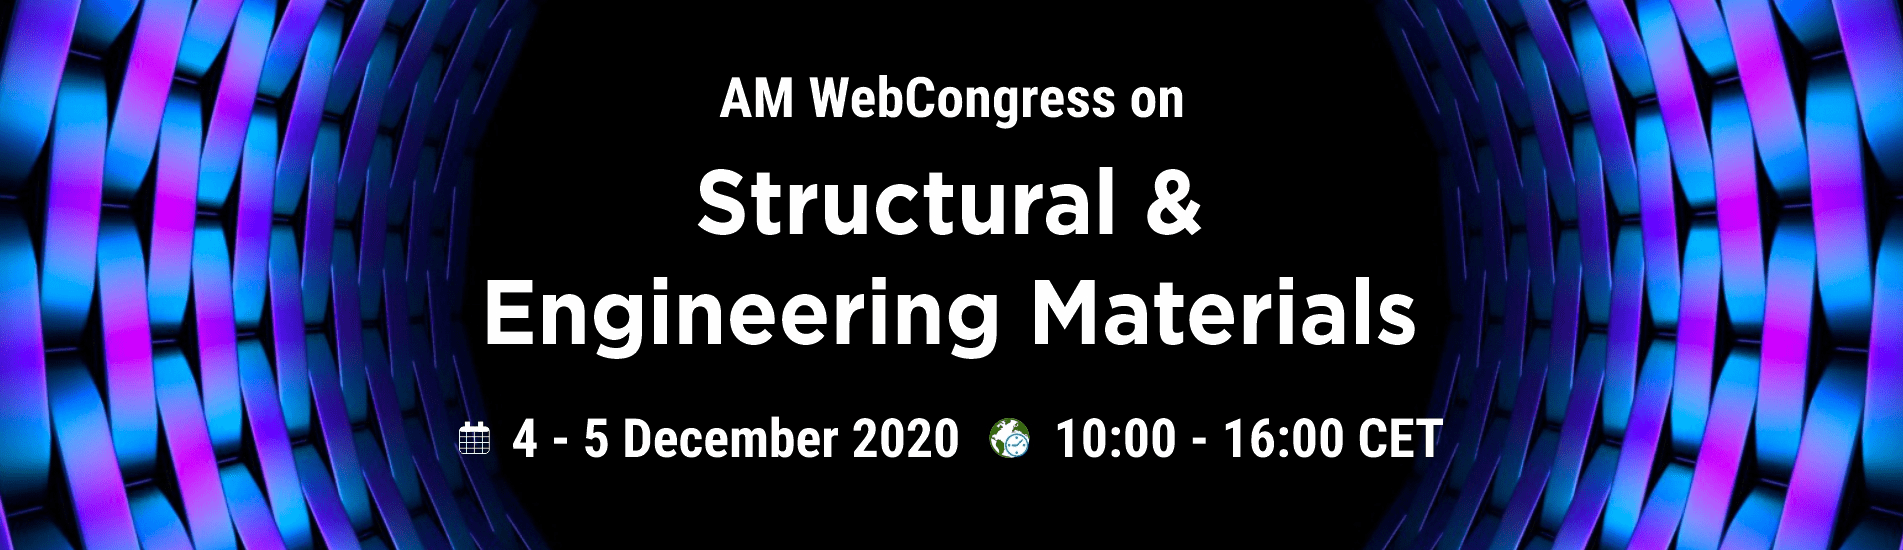 WebCongress on Structural and Engineering Materials | AMWeb | IAAM